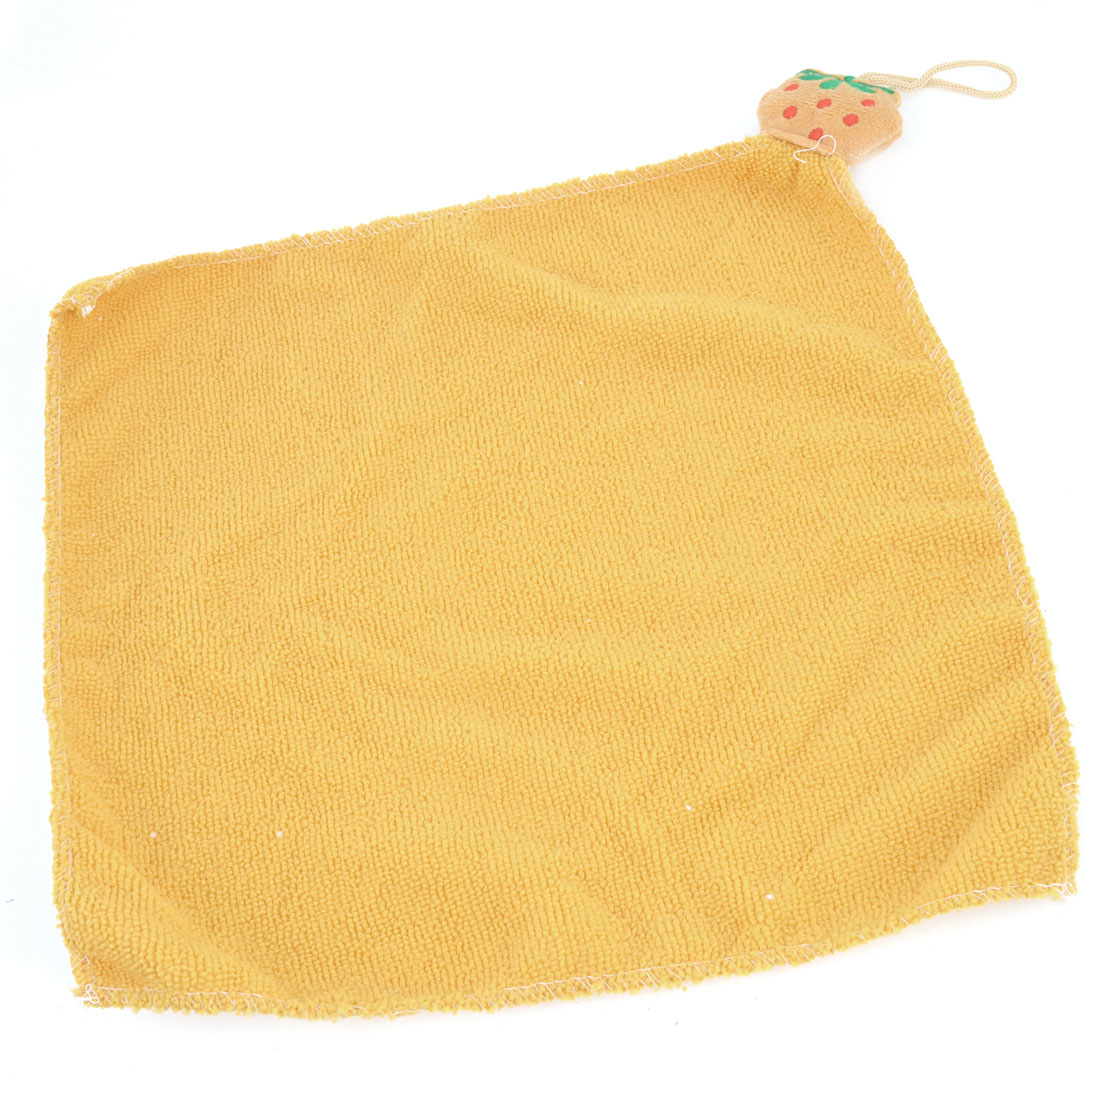 Home Orange Pear Decor Square Water Absorption Washcloth Soft Hanging Hand Face Cleaning Towel Cloth